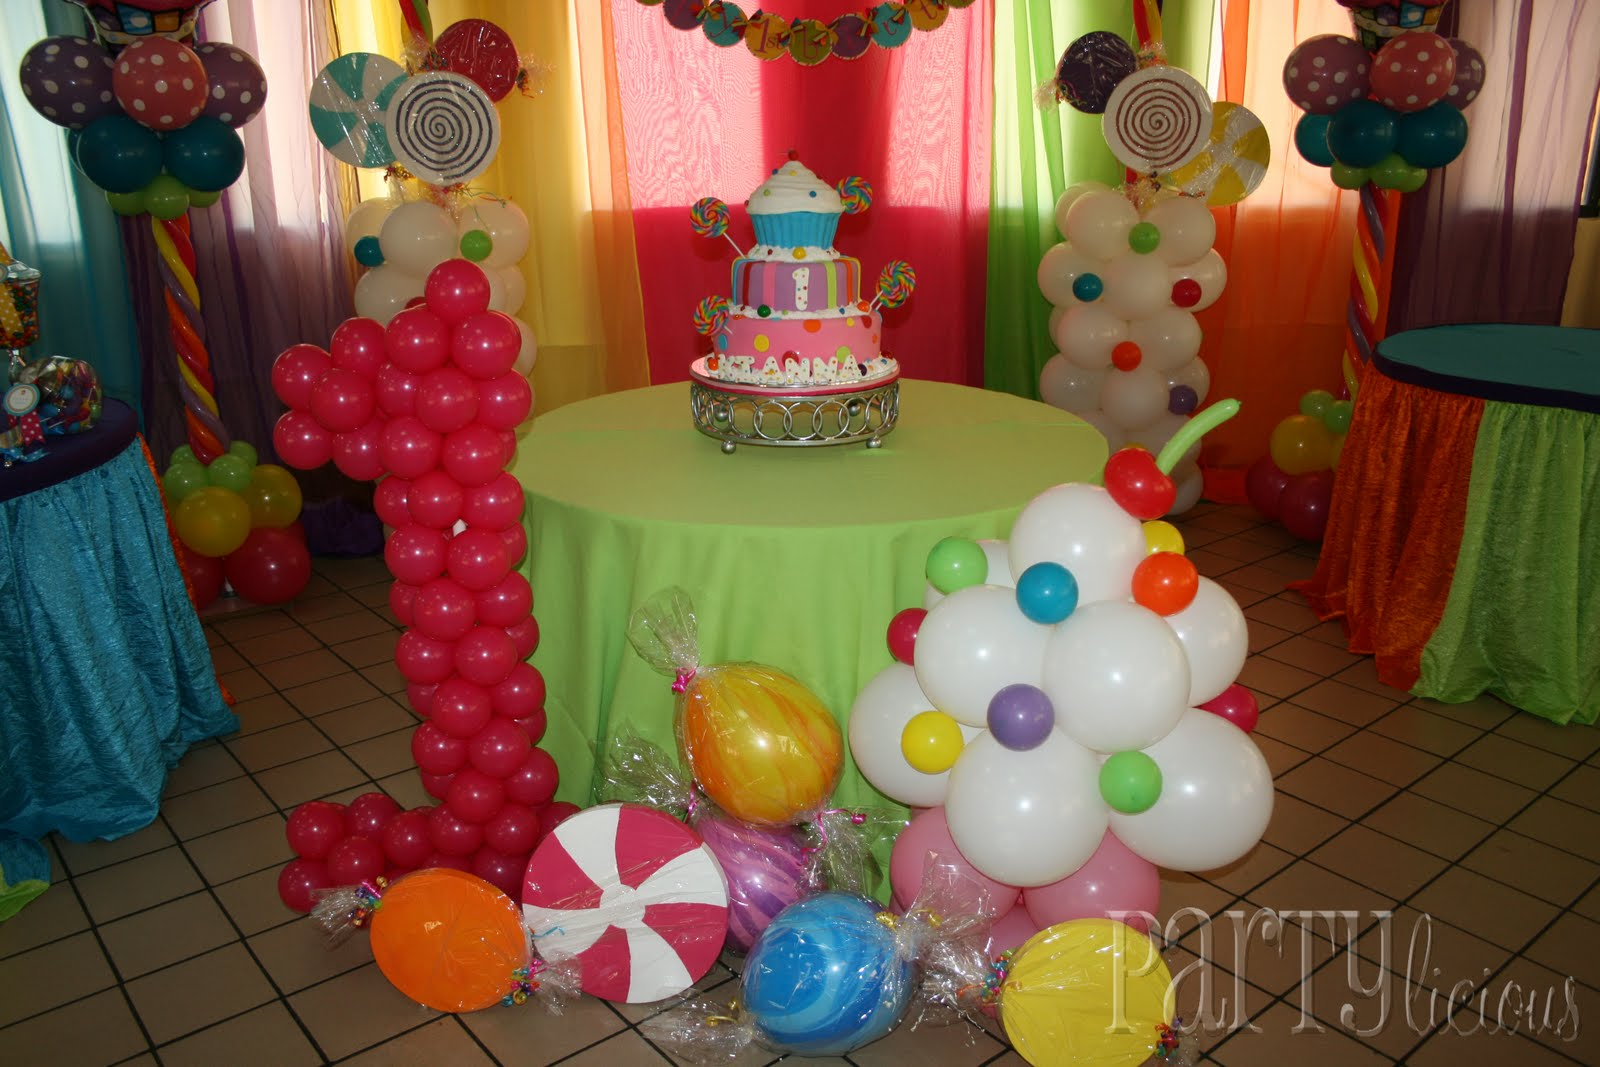 Partylicious events pr sweet 1st birthday candy cupcakes for 1st birthday decoration pictures